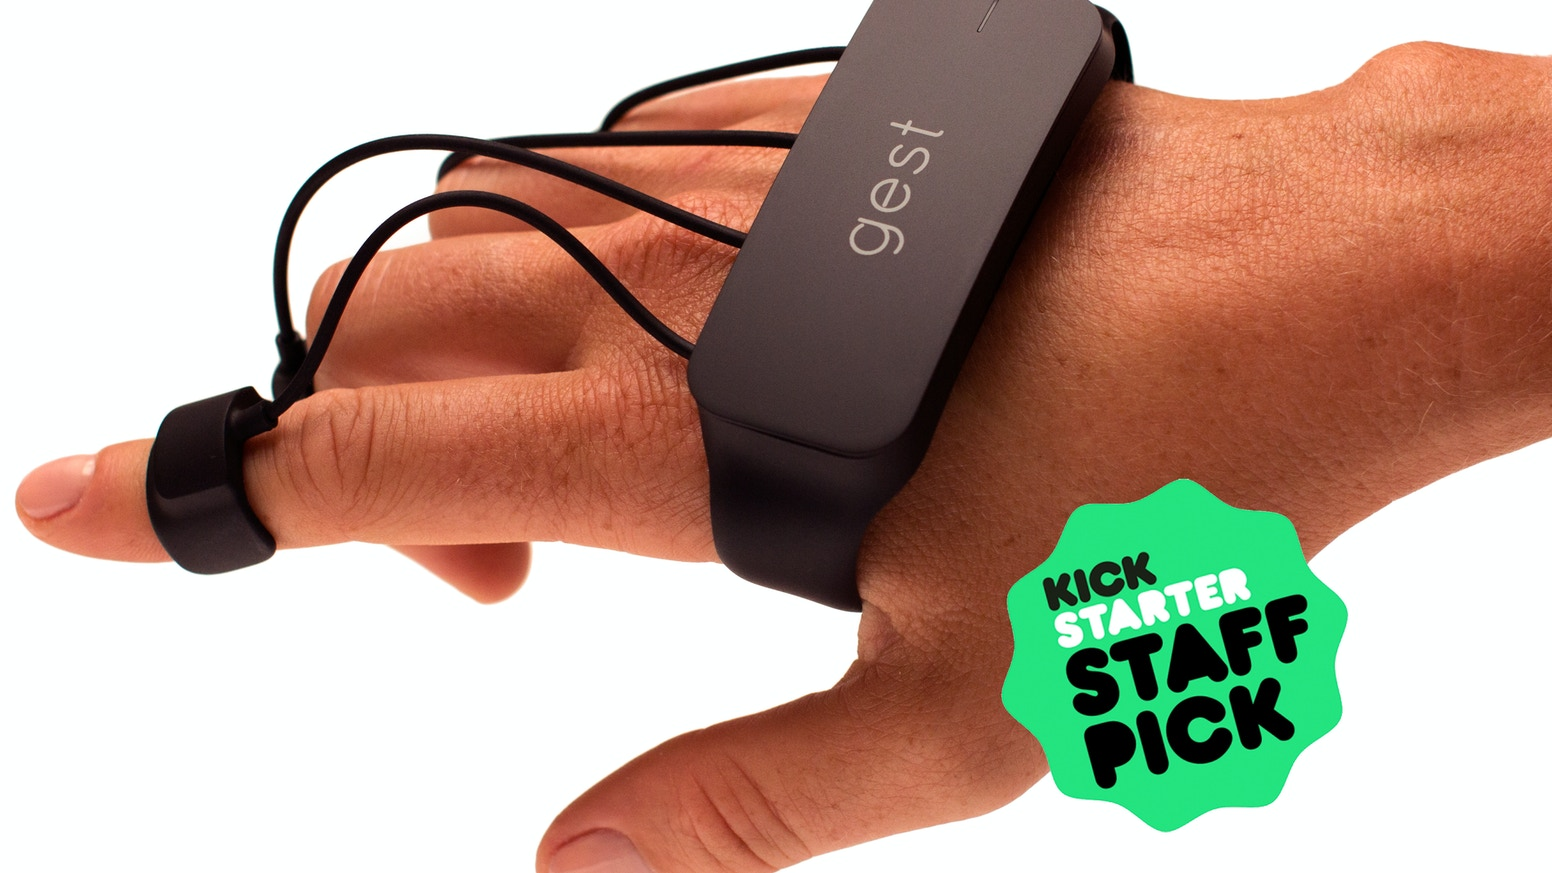 Gest is a wearable device that allows you to control your computer or mobile device with your hands.